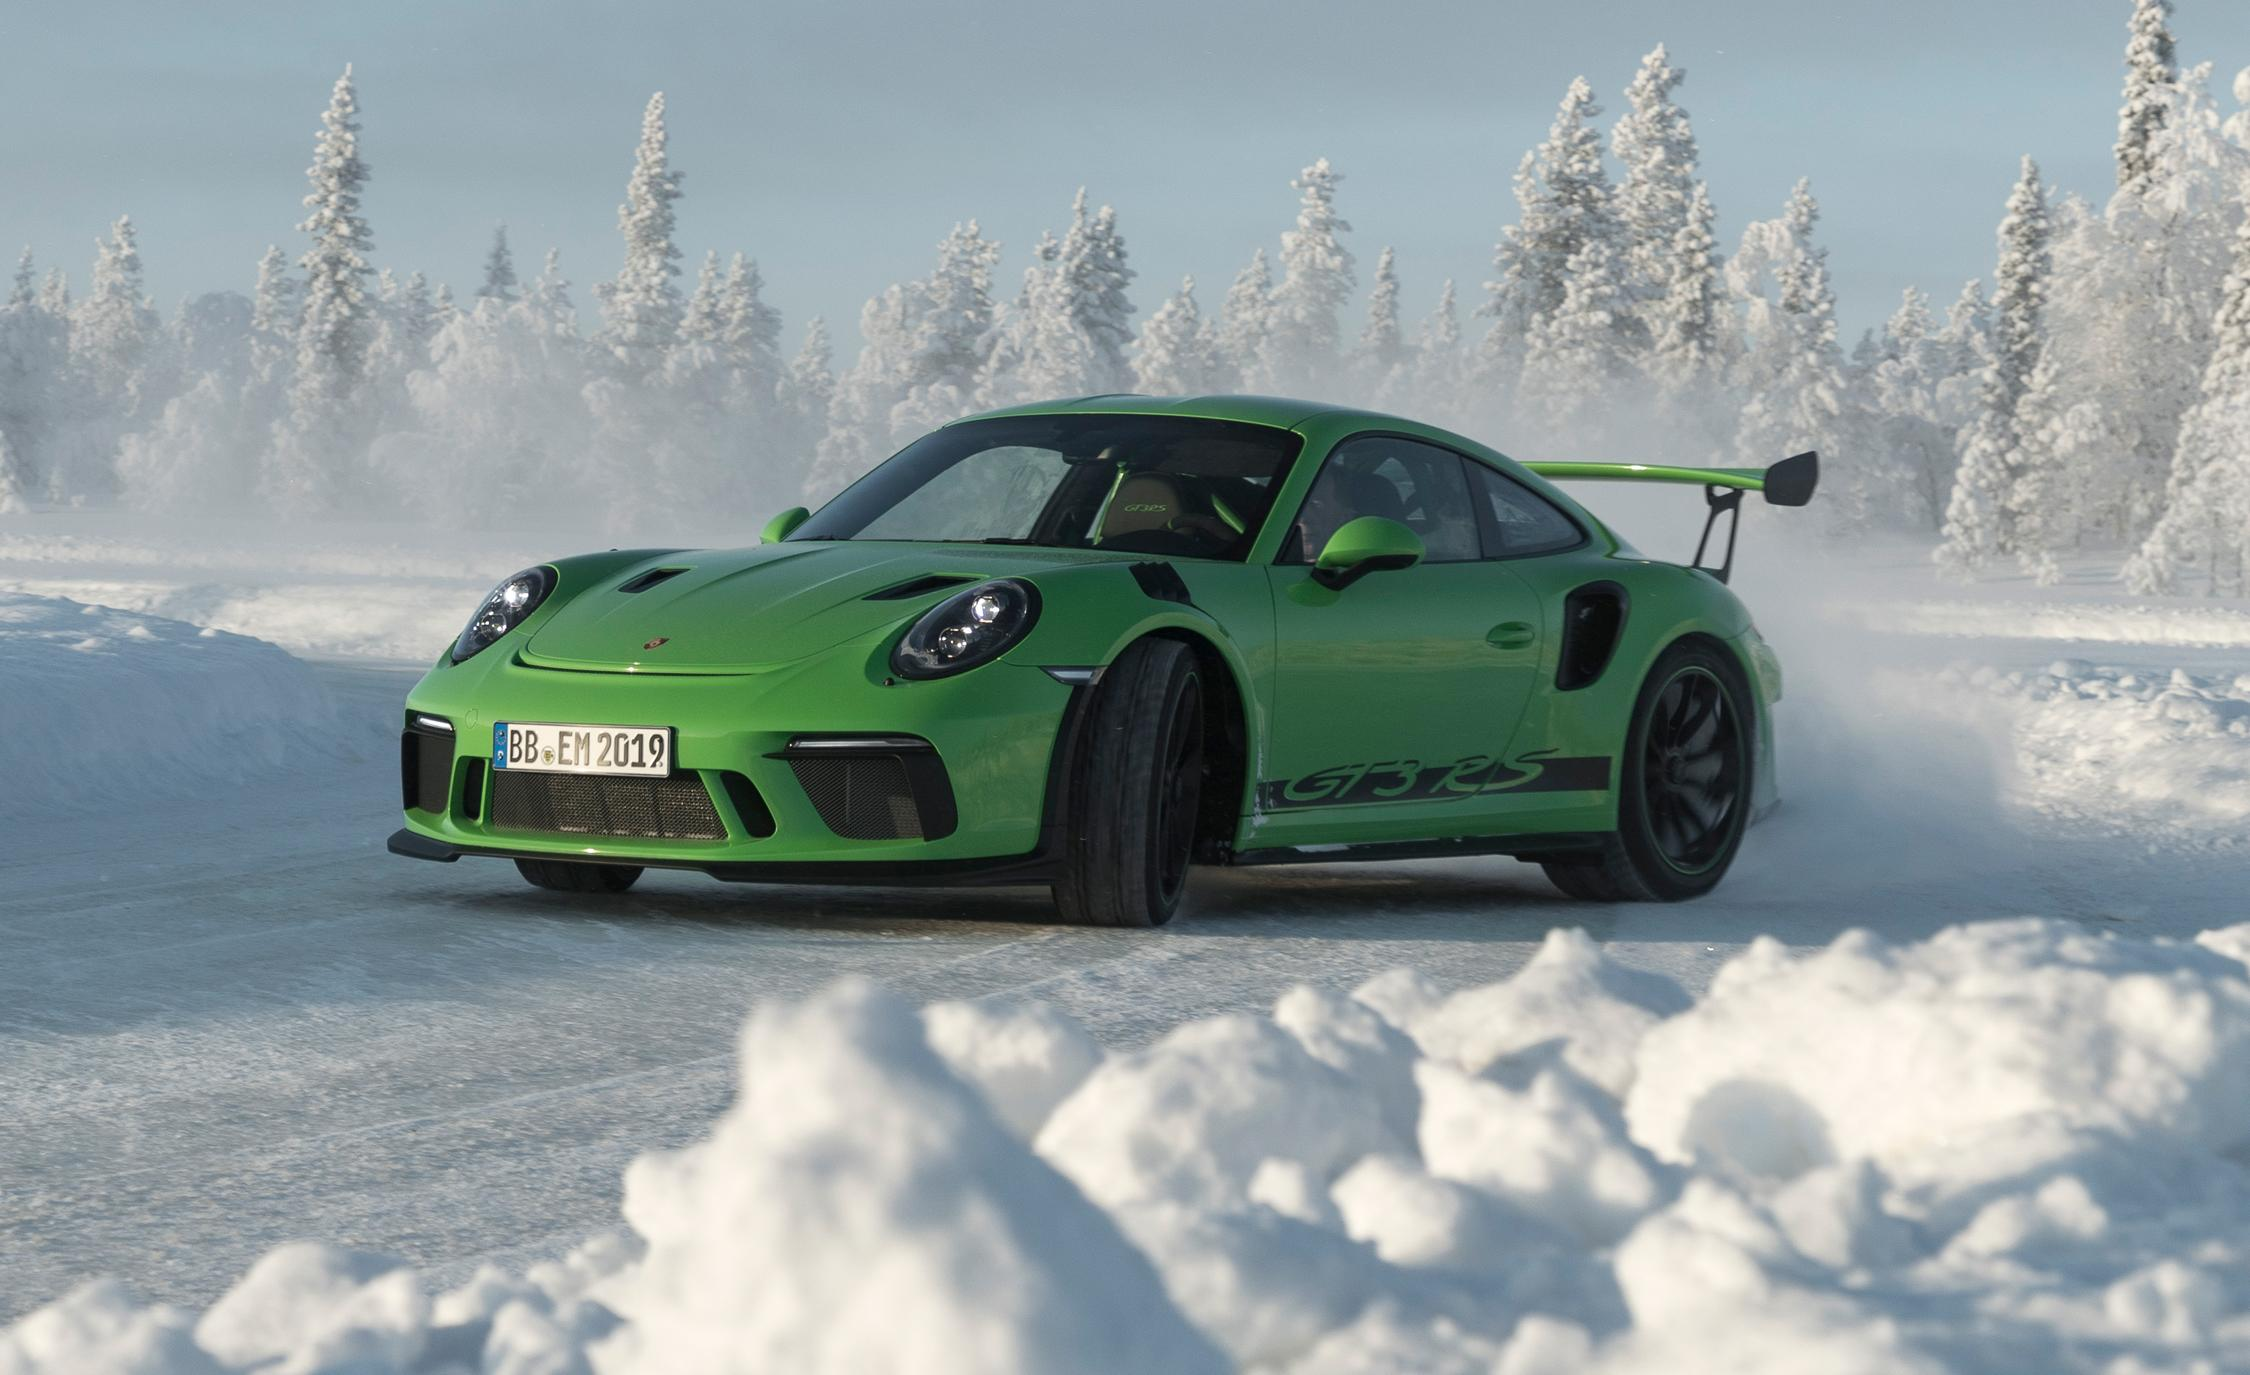 2019 Porsche 911 GT3 RS: It Looks Bad- Because It Is